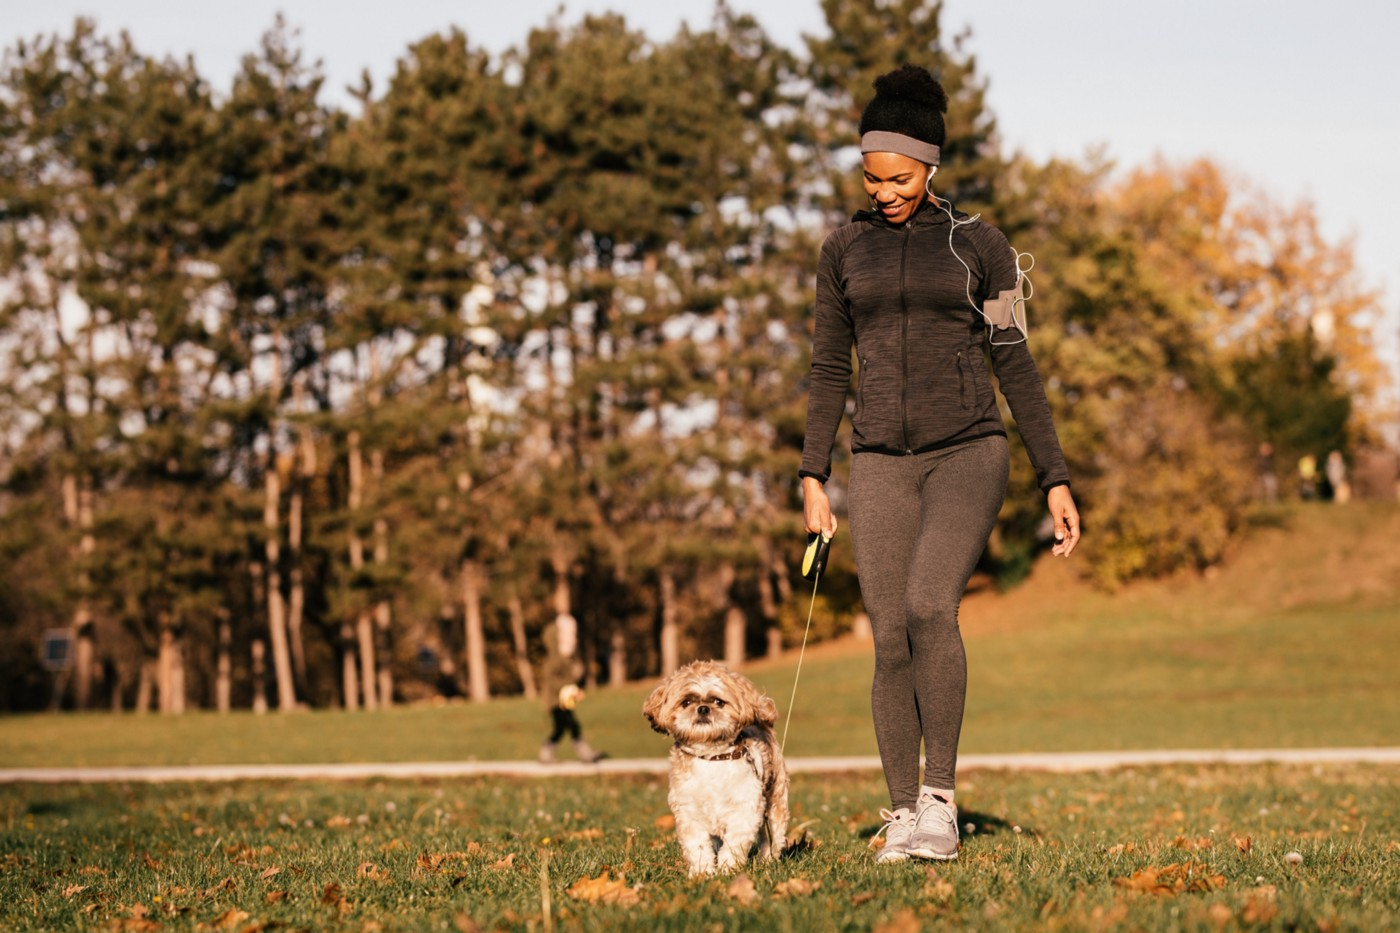 A photo of a black woman walking her dog at a park.